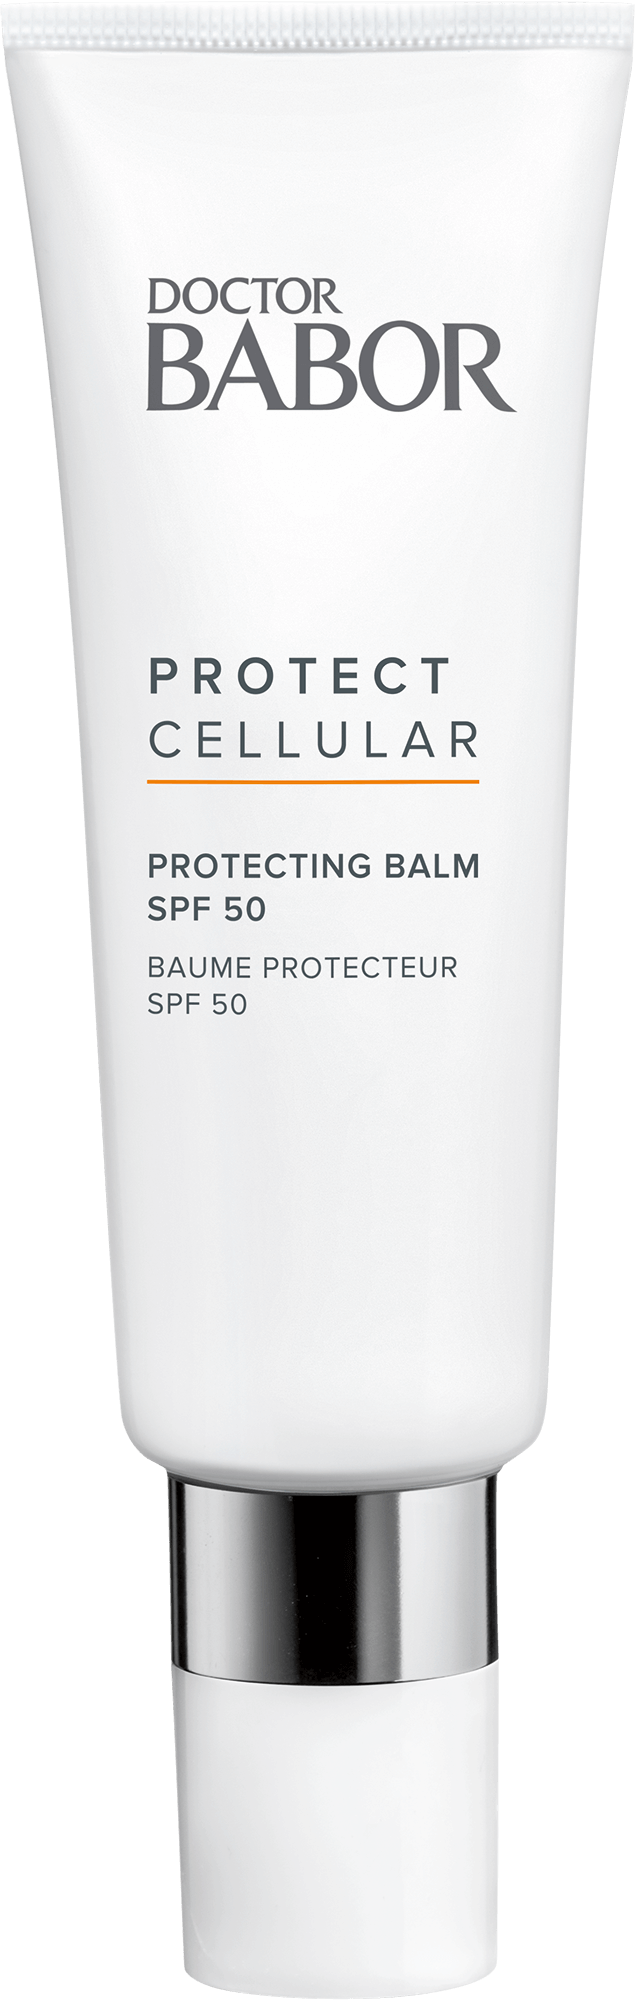 DOCTOR BABOR PROTECT CELLULAR Protecting Balm SPF 50